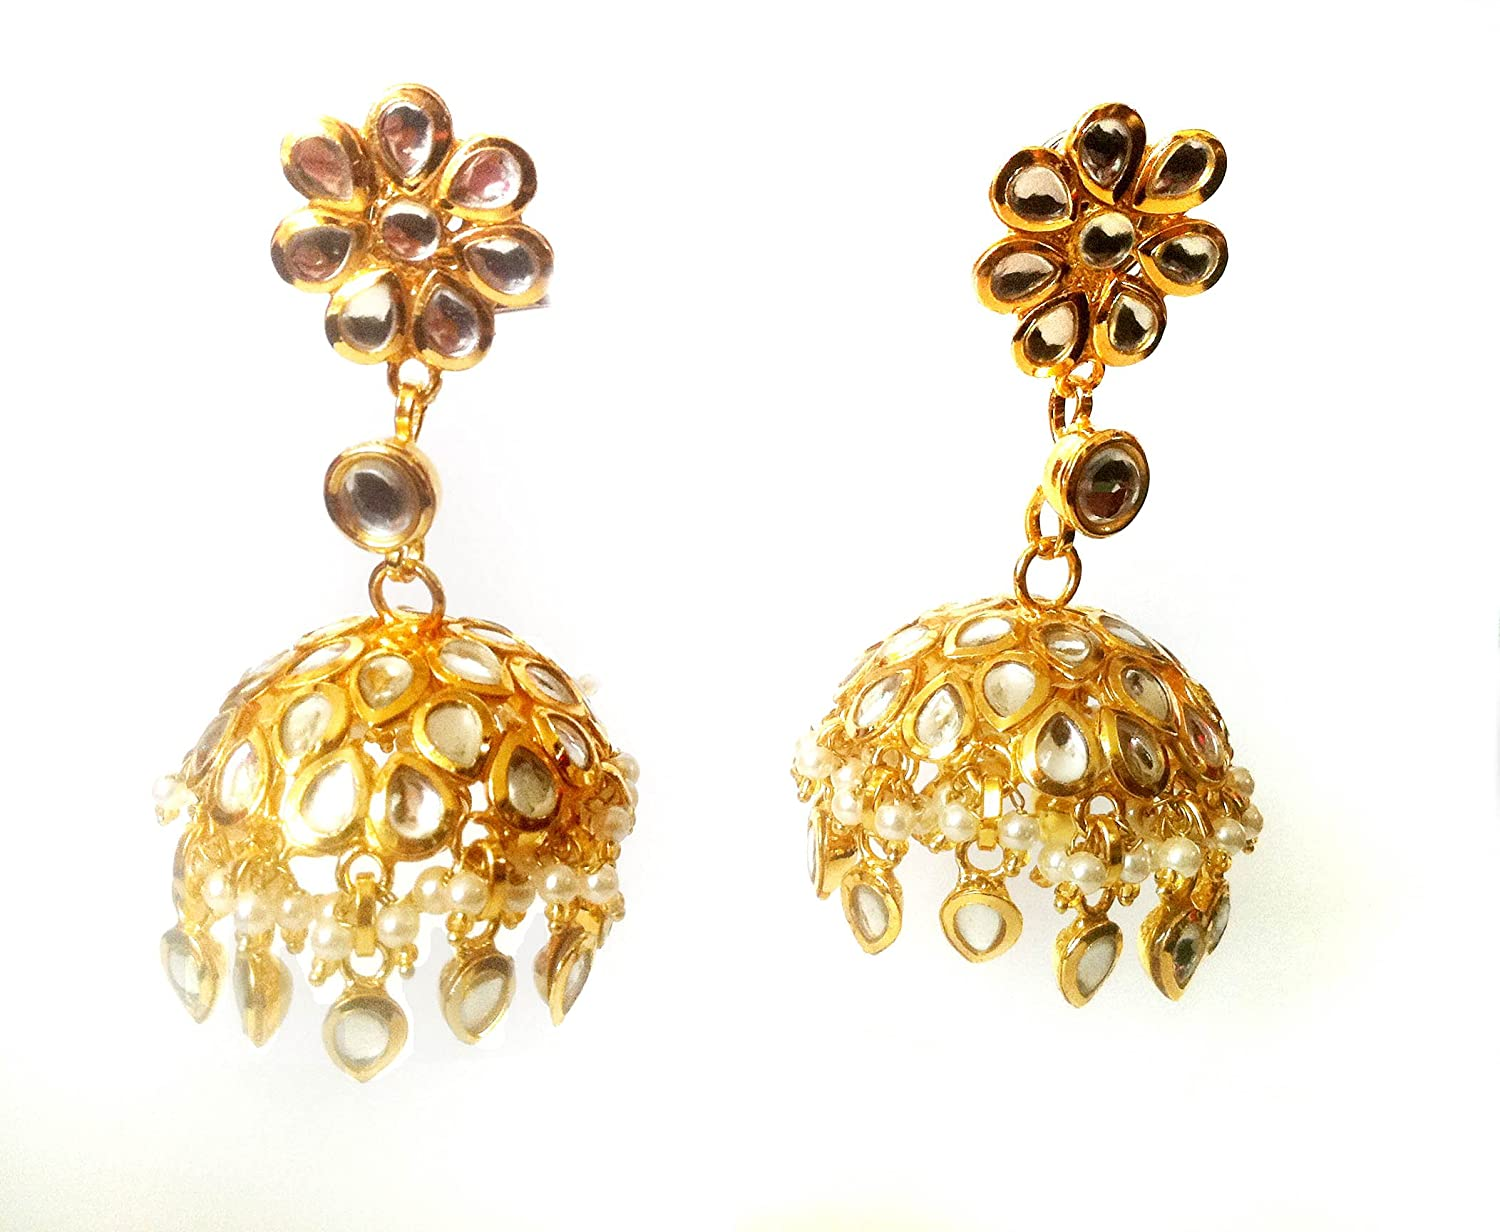 Amazon.com: GOLD & Pearl JHUMKA EARRINGS, Kundan Jhumkas, Large ...